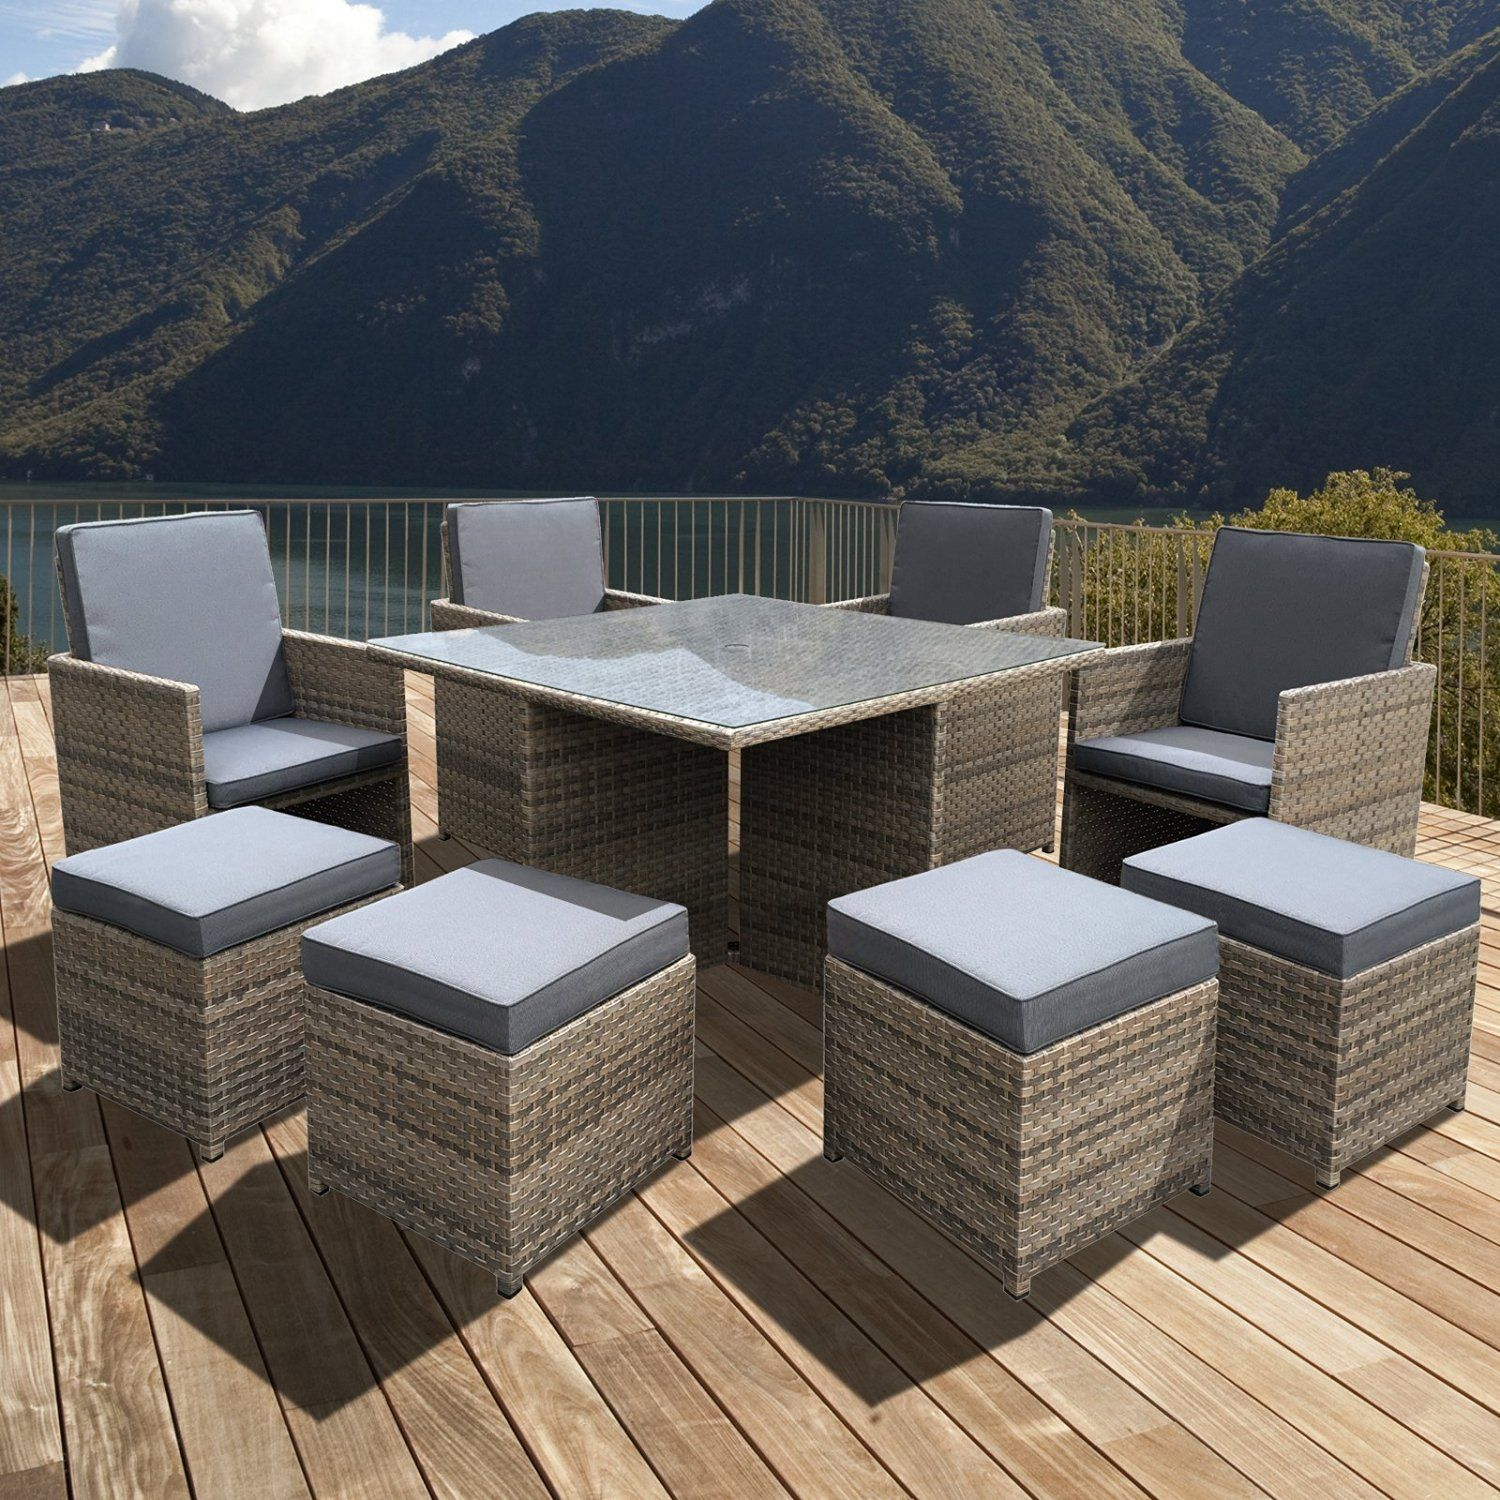 Oseasons OSRZCUBSET CHWW 8 Seater Cube Rattan Dining Set Chic